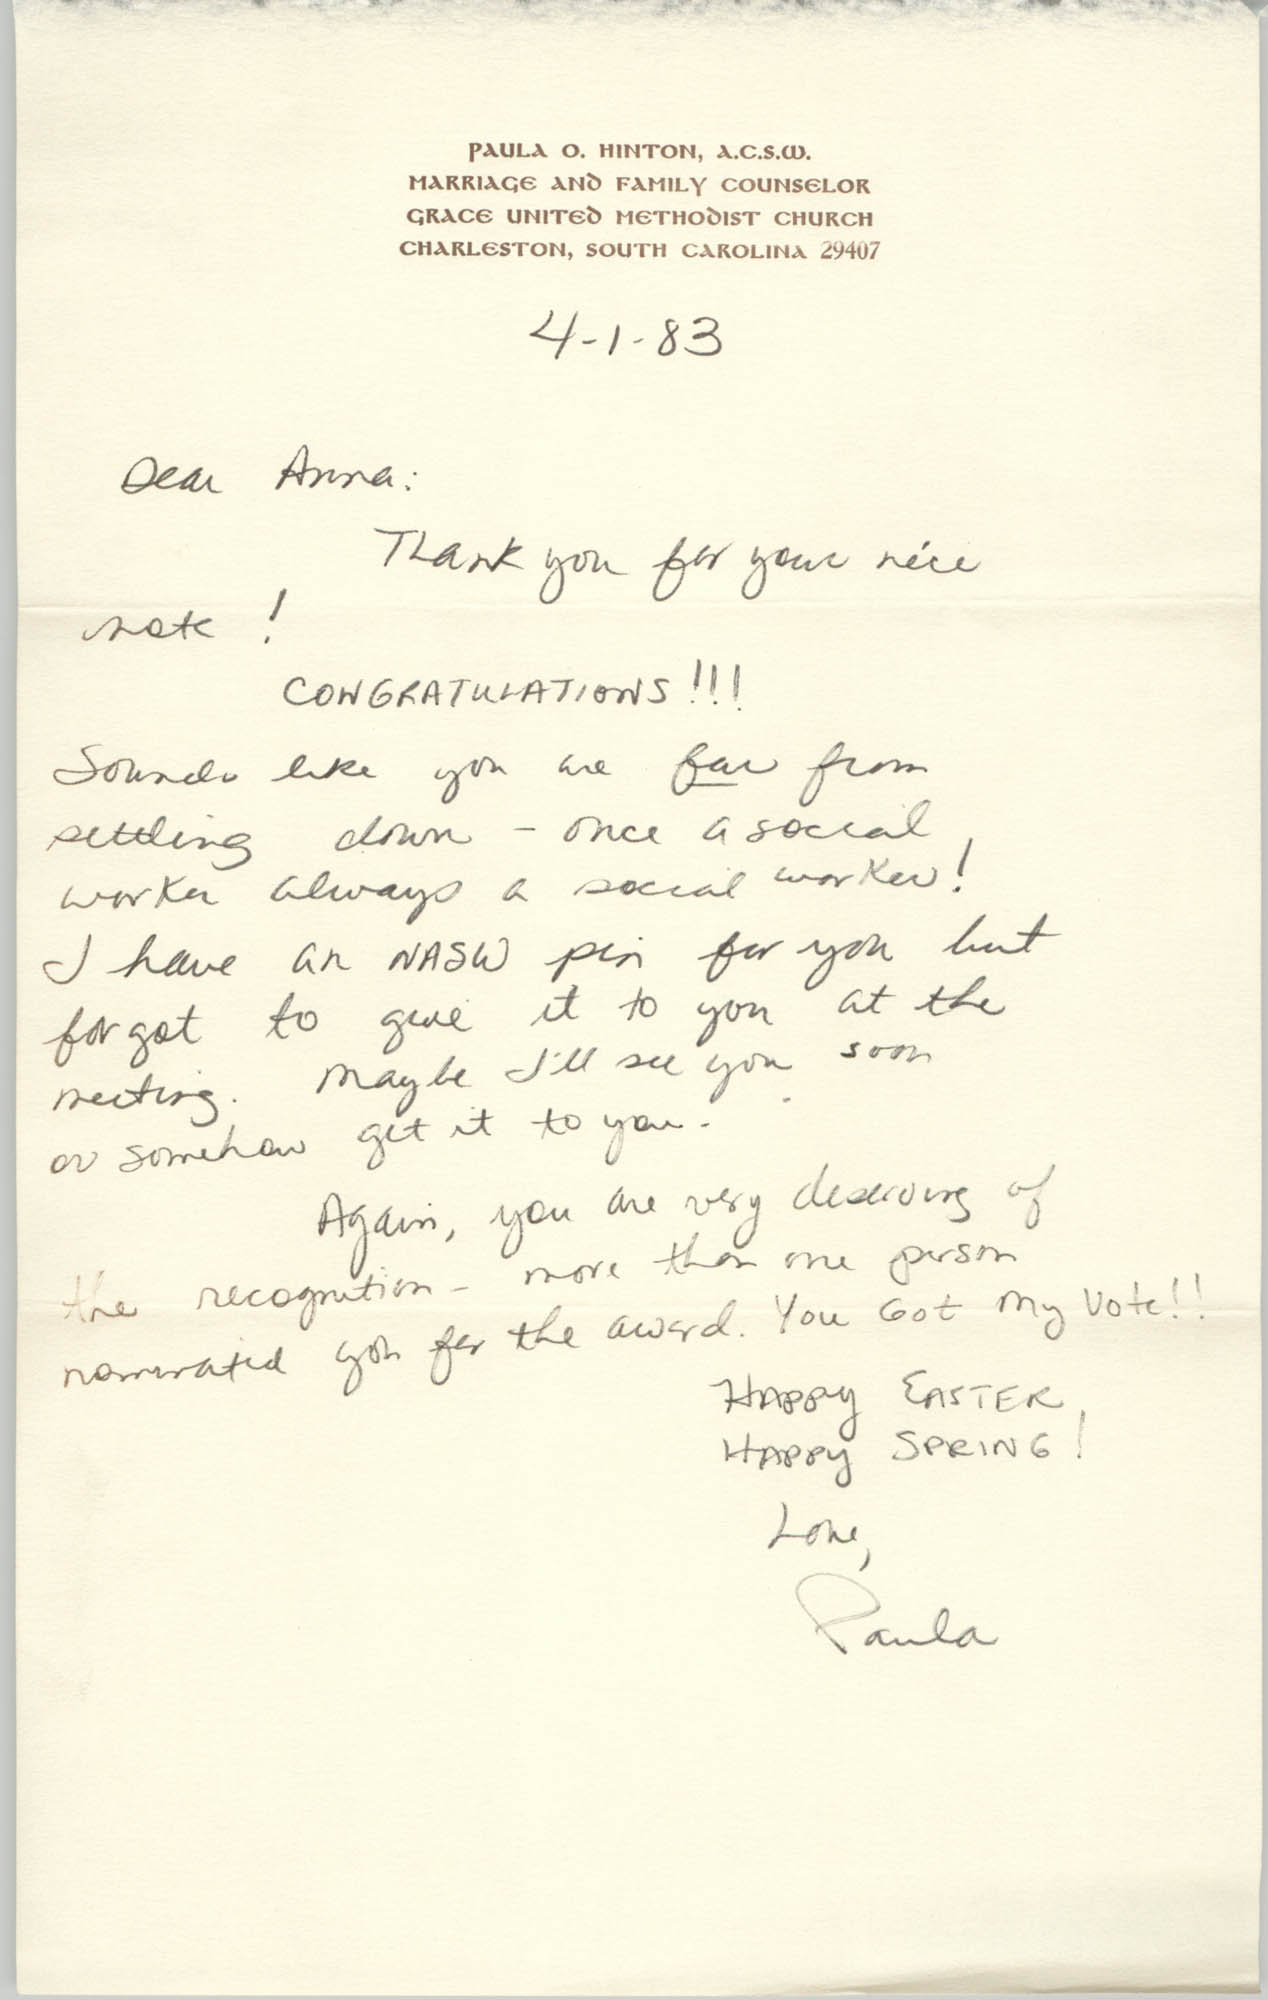 Letter from Paula O. Hinton to Anna D. Kelly, April 1, 1983